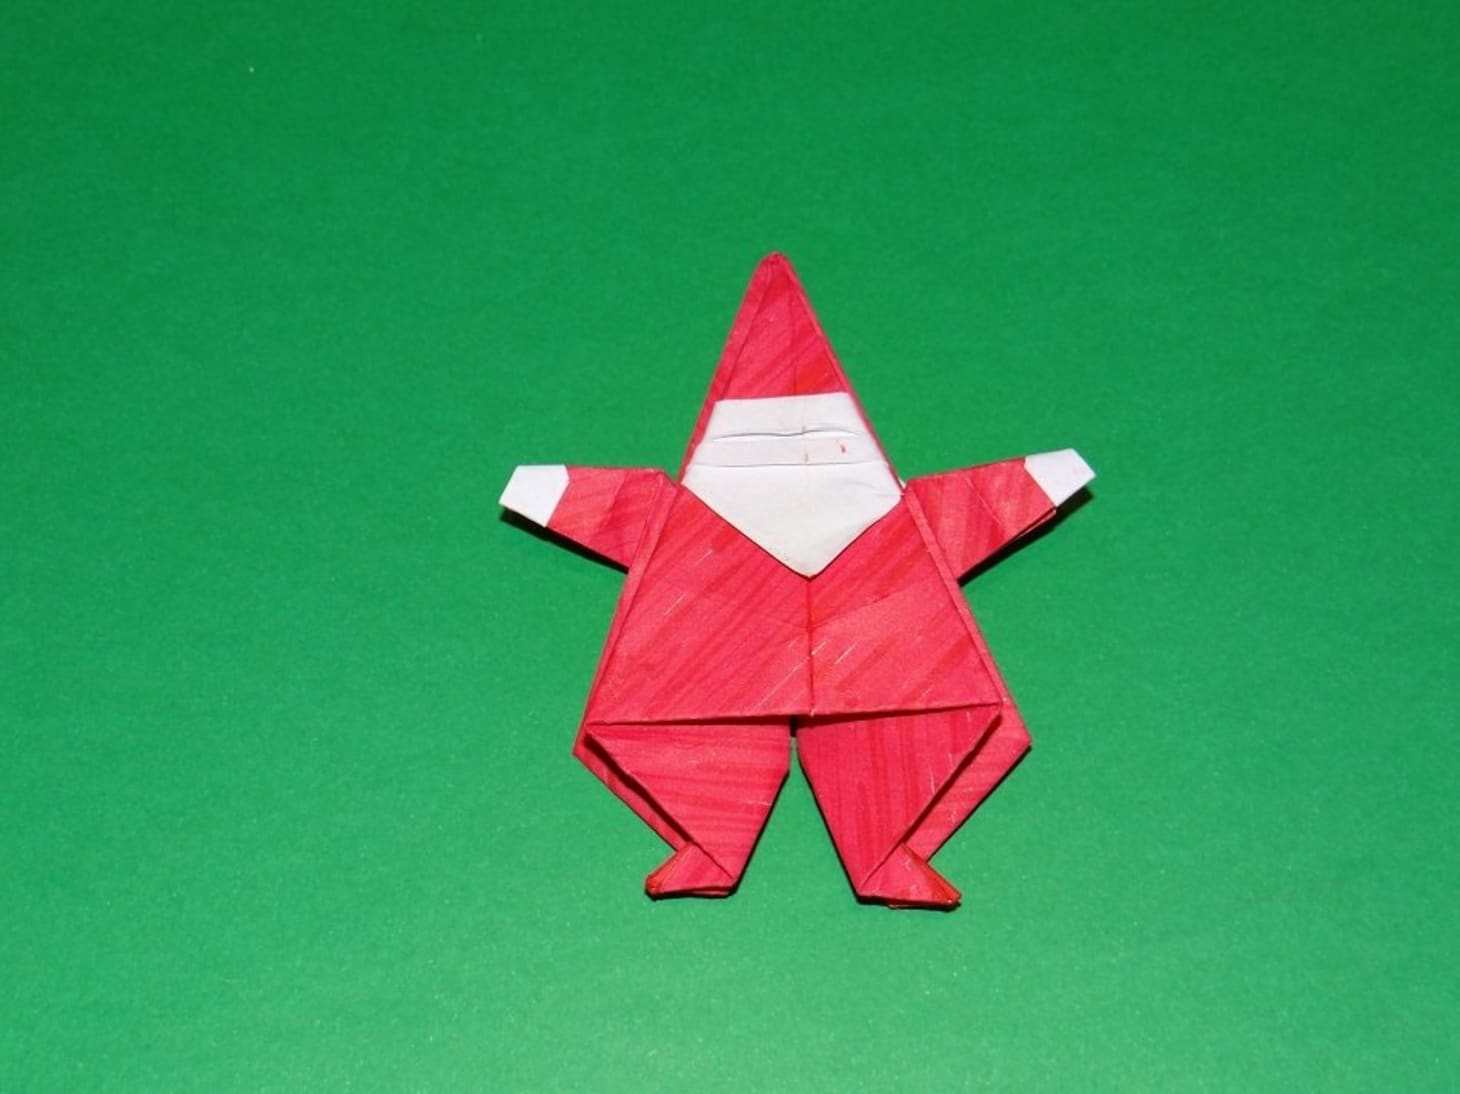 Christmas Origami.Origami Christmas Ornaments Apartment Therapy